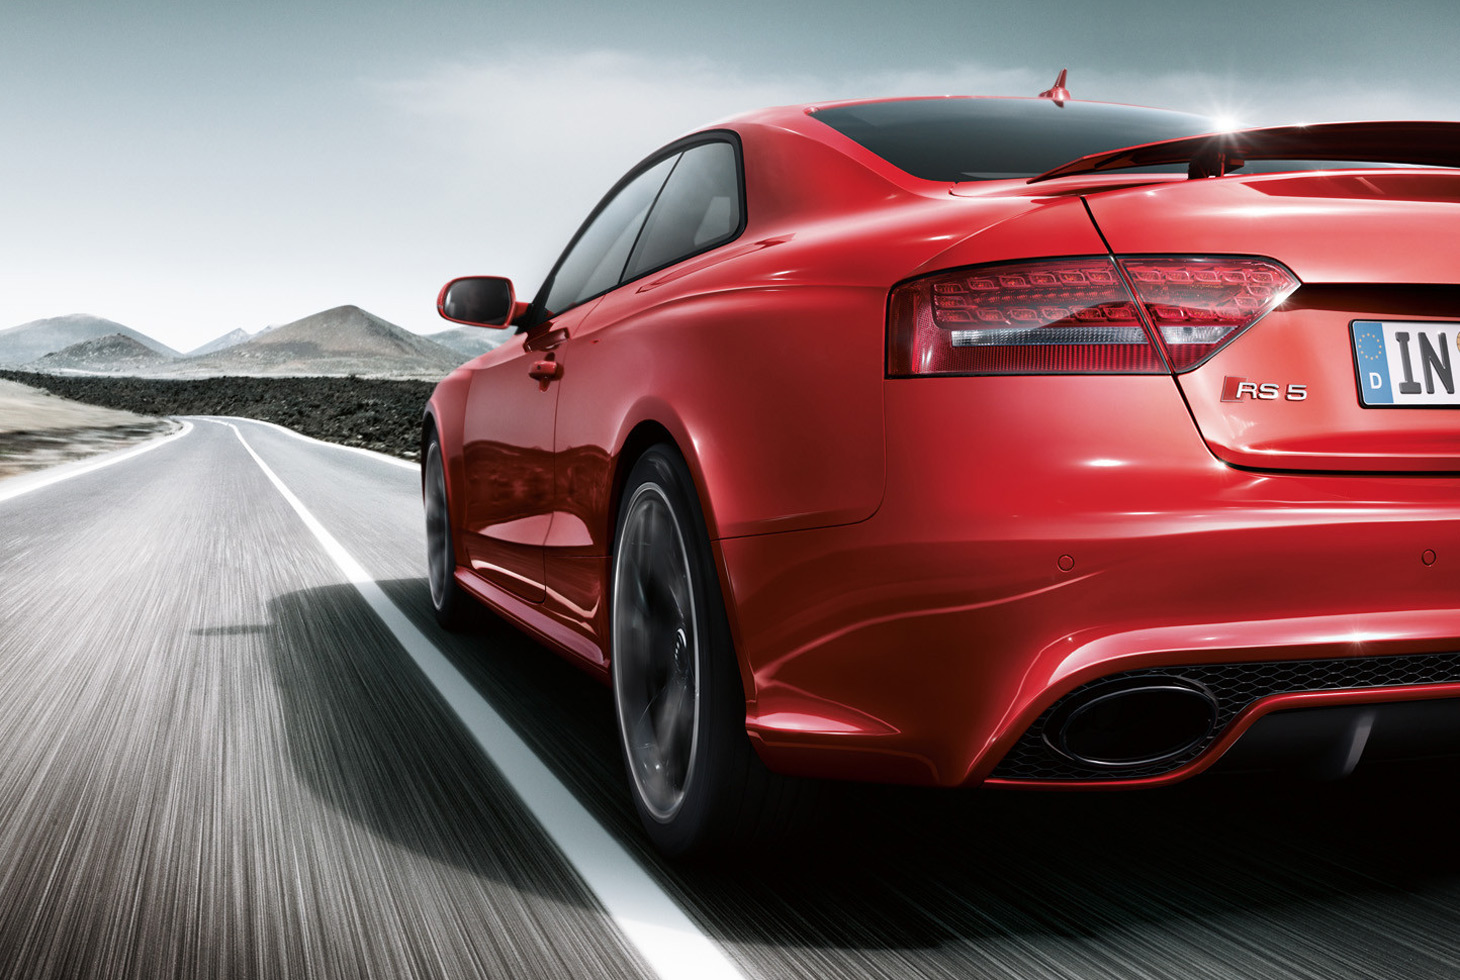 The Official Audi Rs5 Thread Updated W Video Reviews And